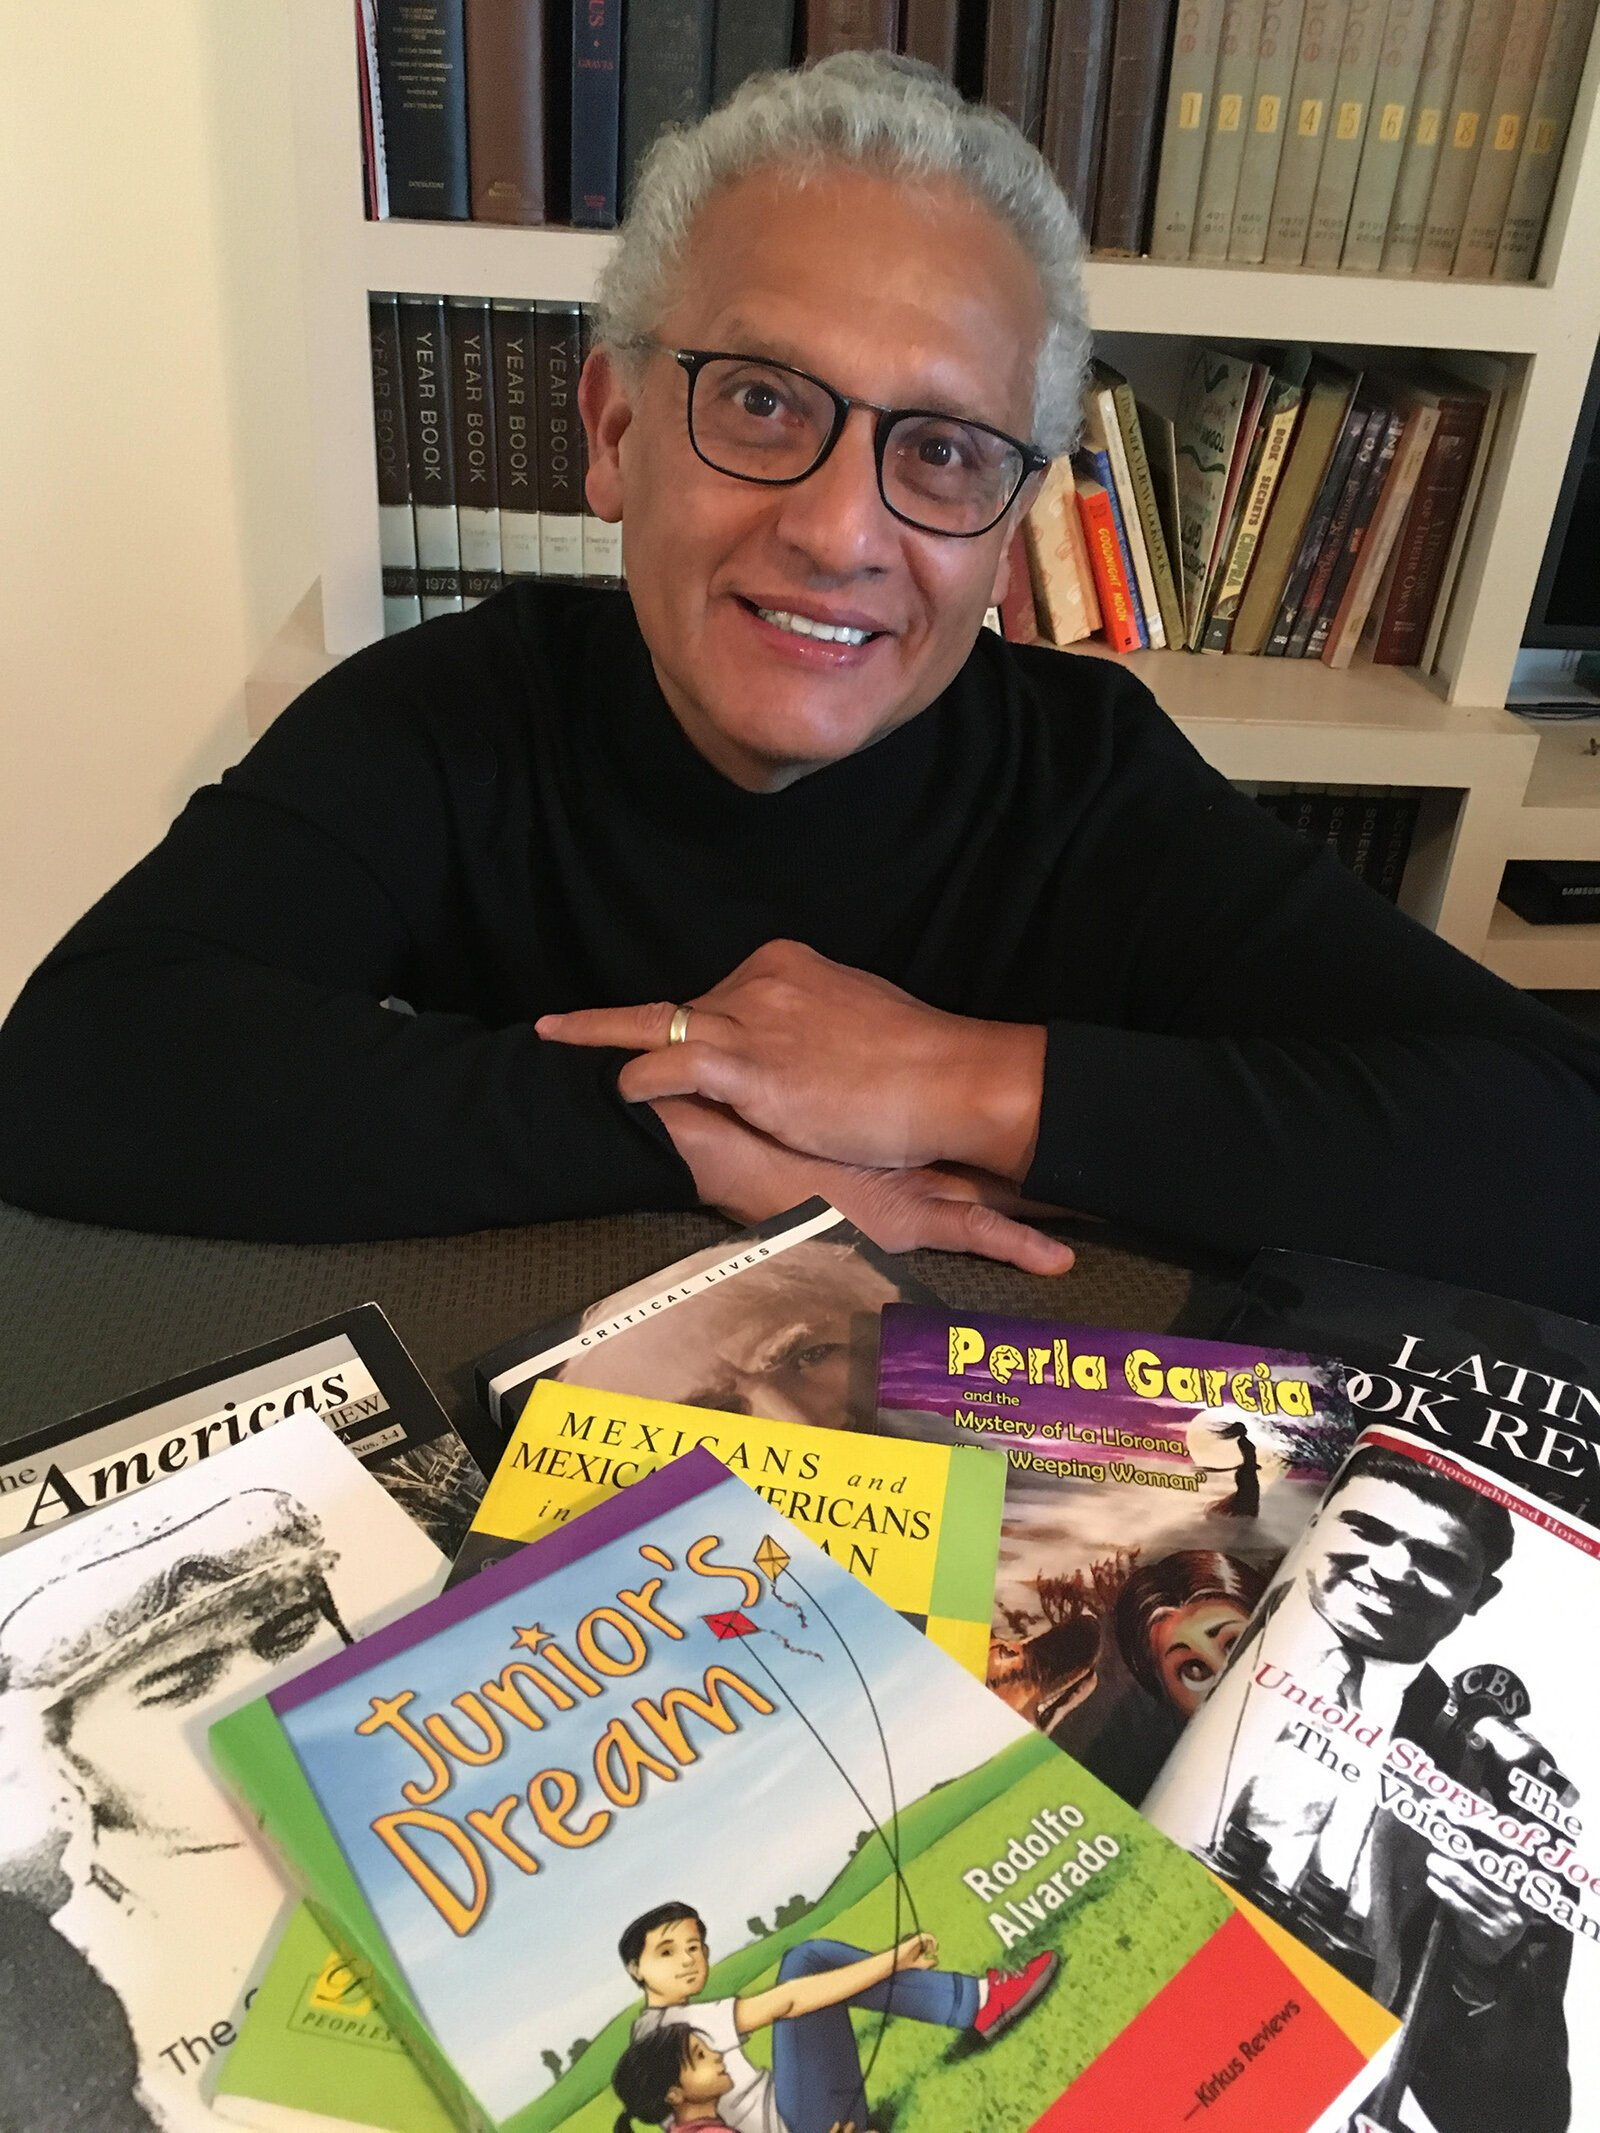 Rodolfo Alvarado with some of the books he's written.